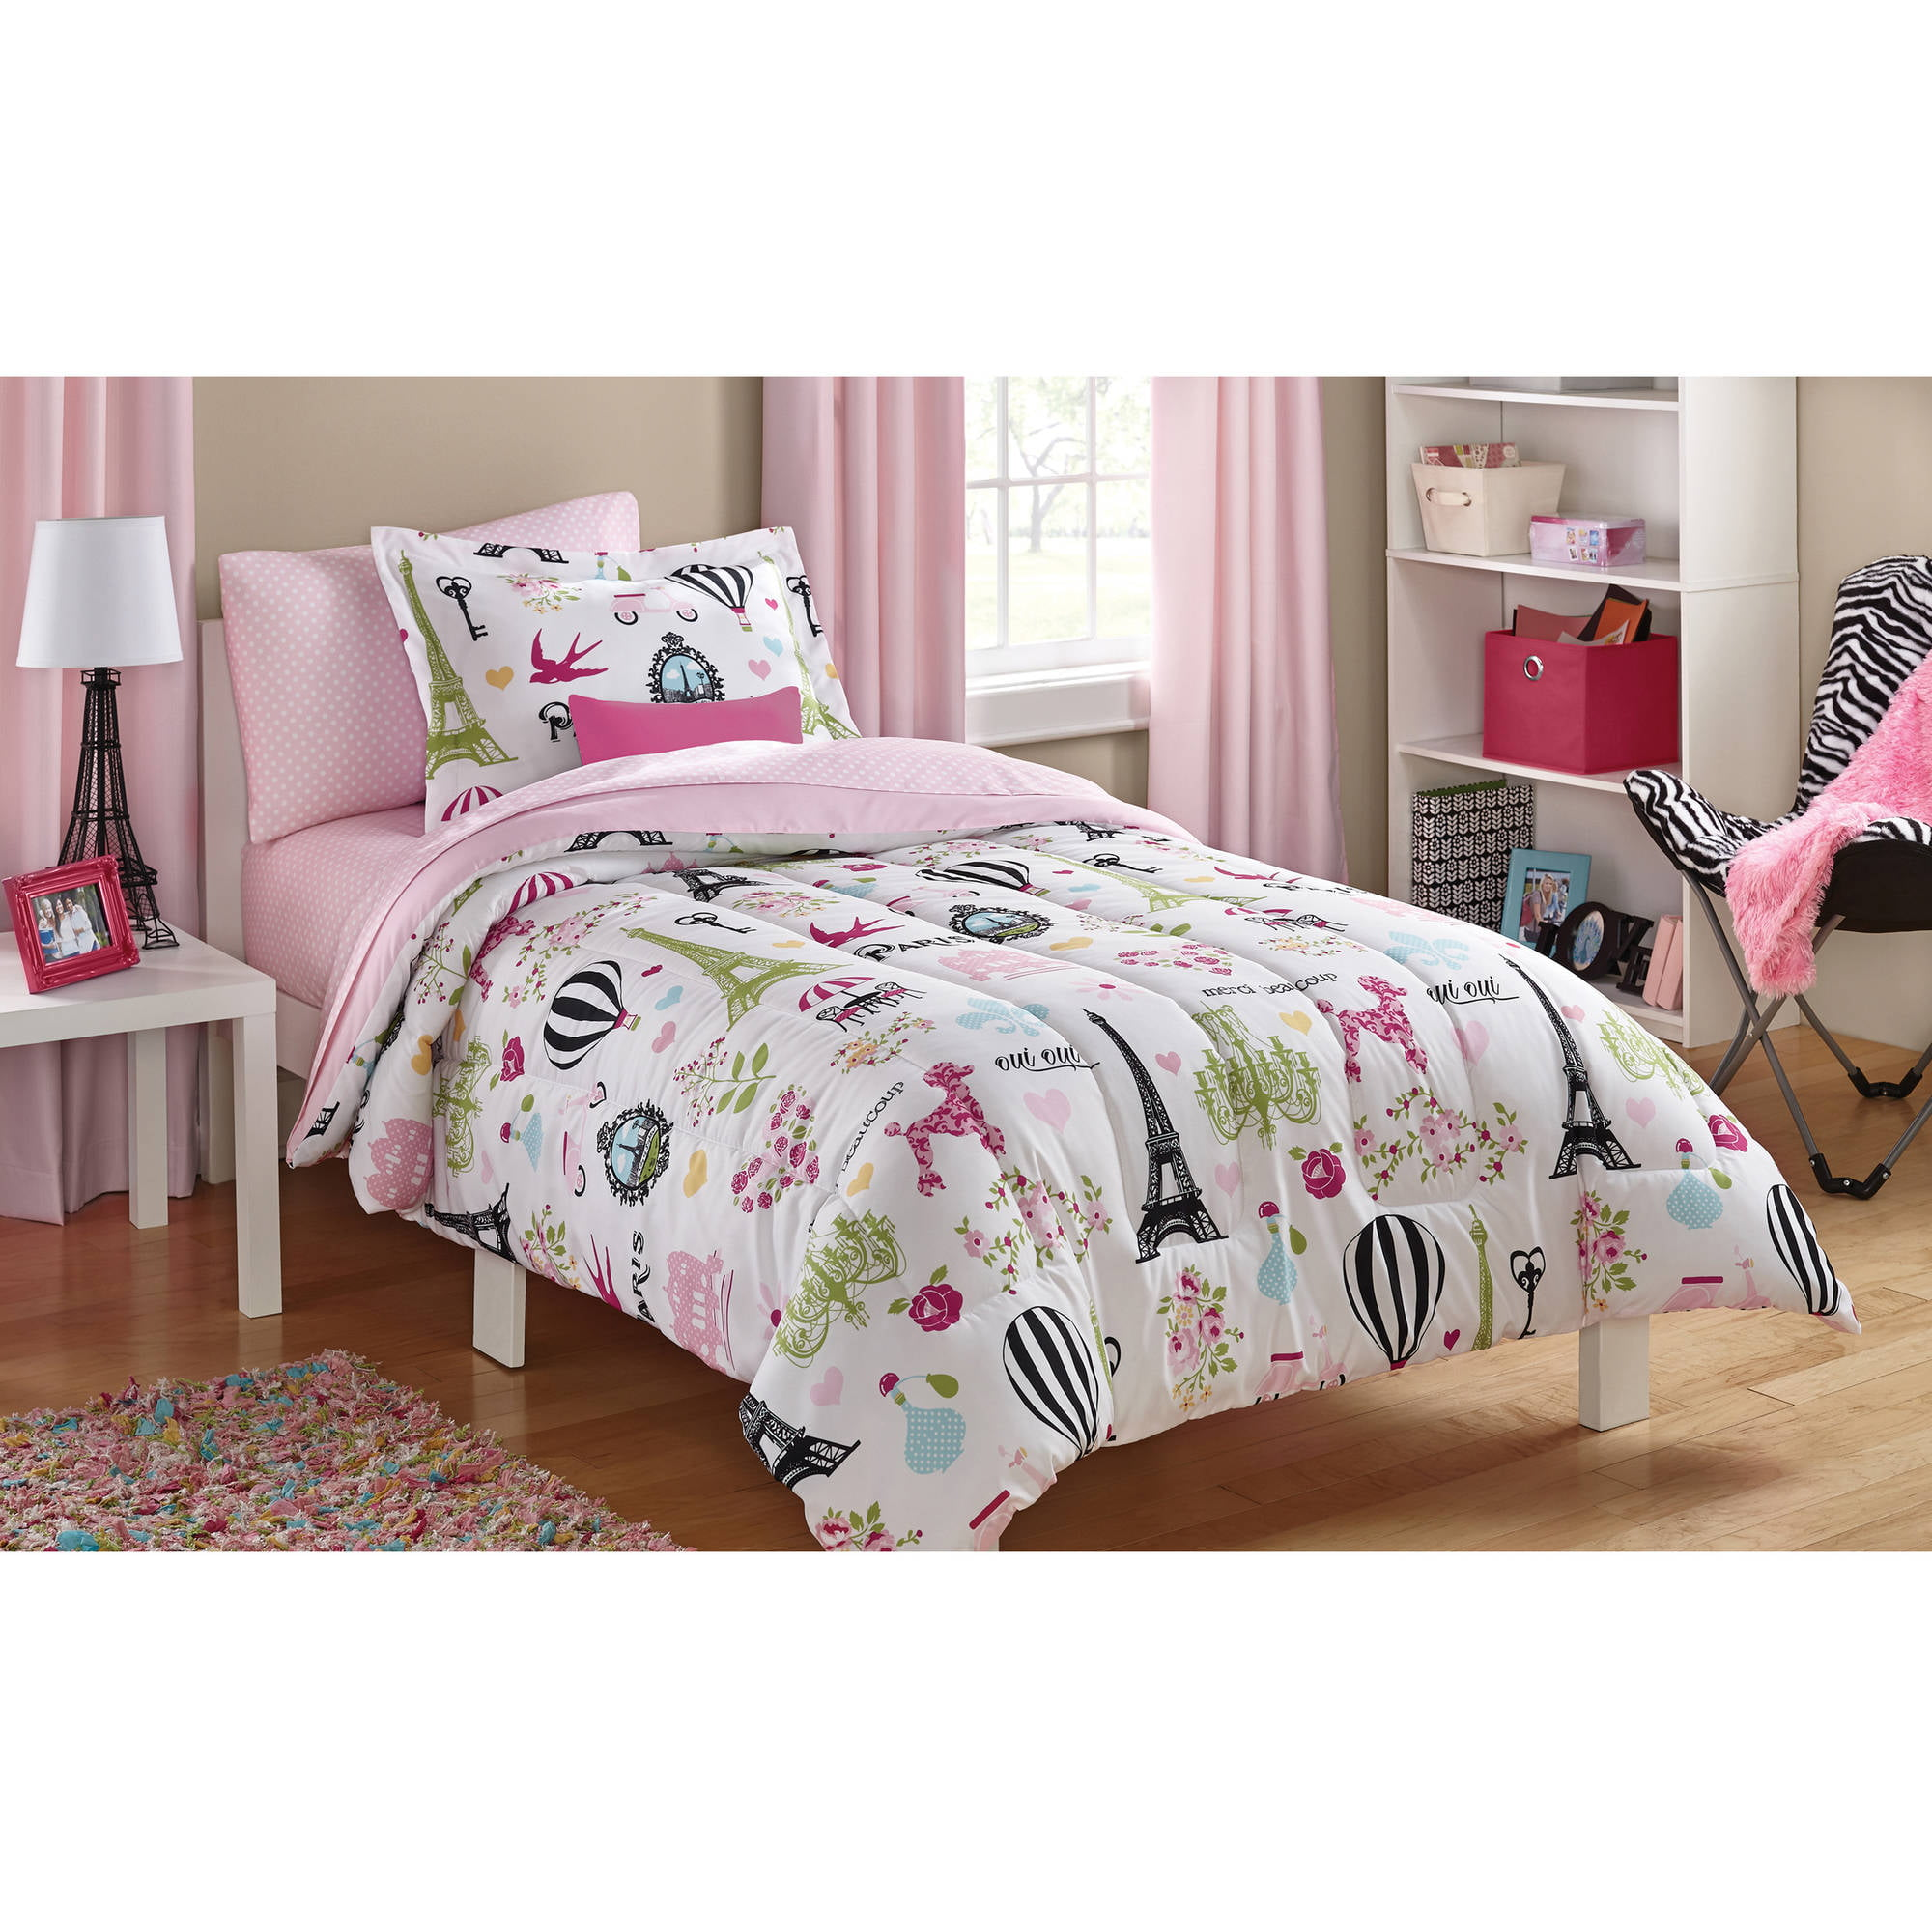 coral set pin design intelligent comforters sets overstock teen the com comforter best lily deals shopping on